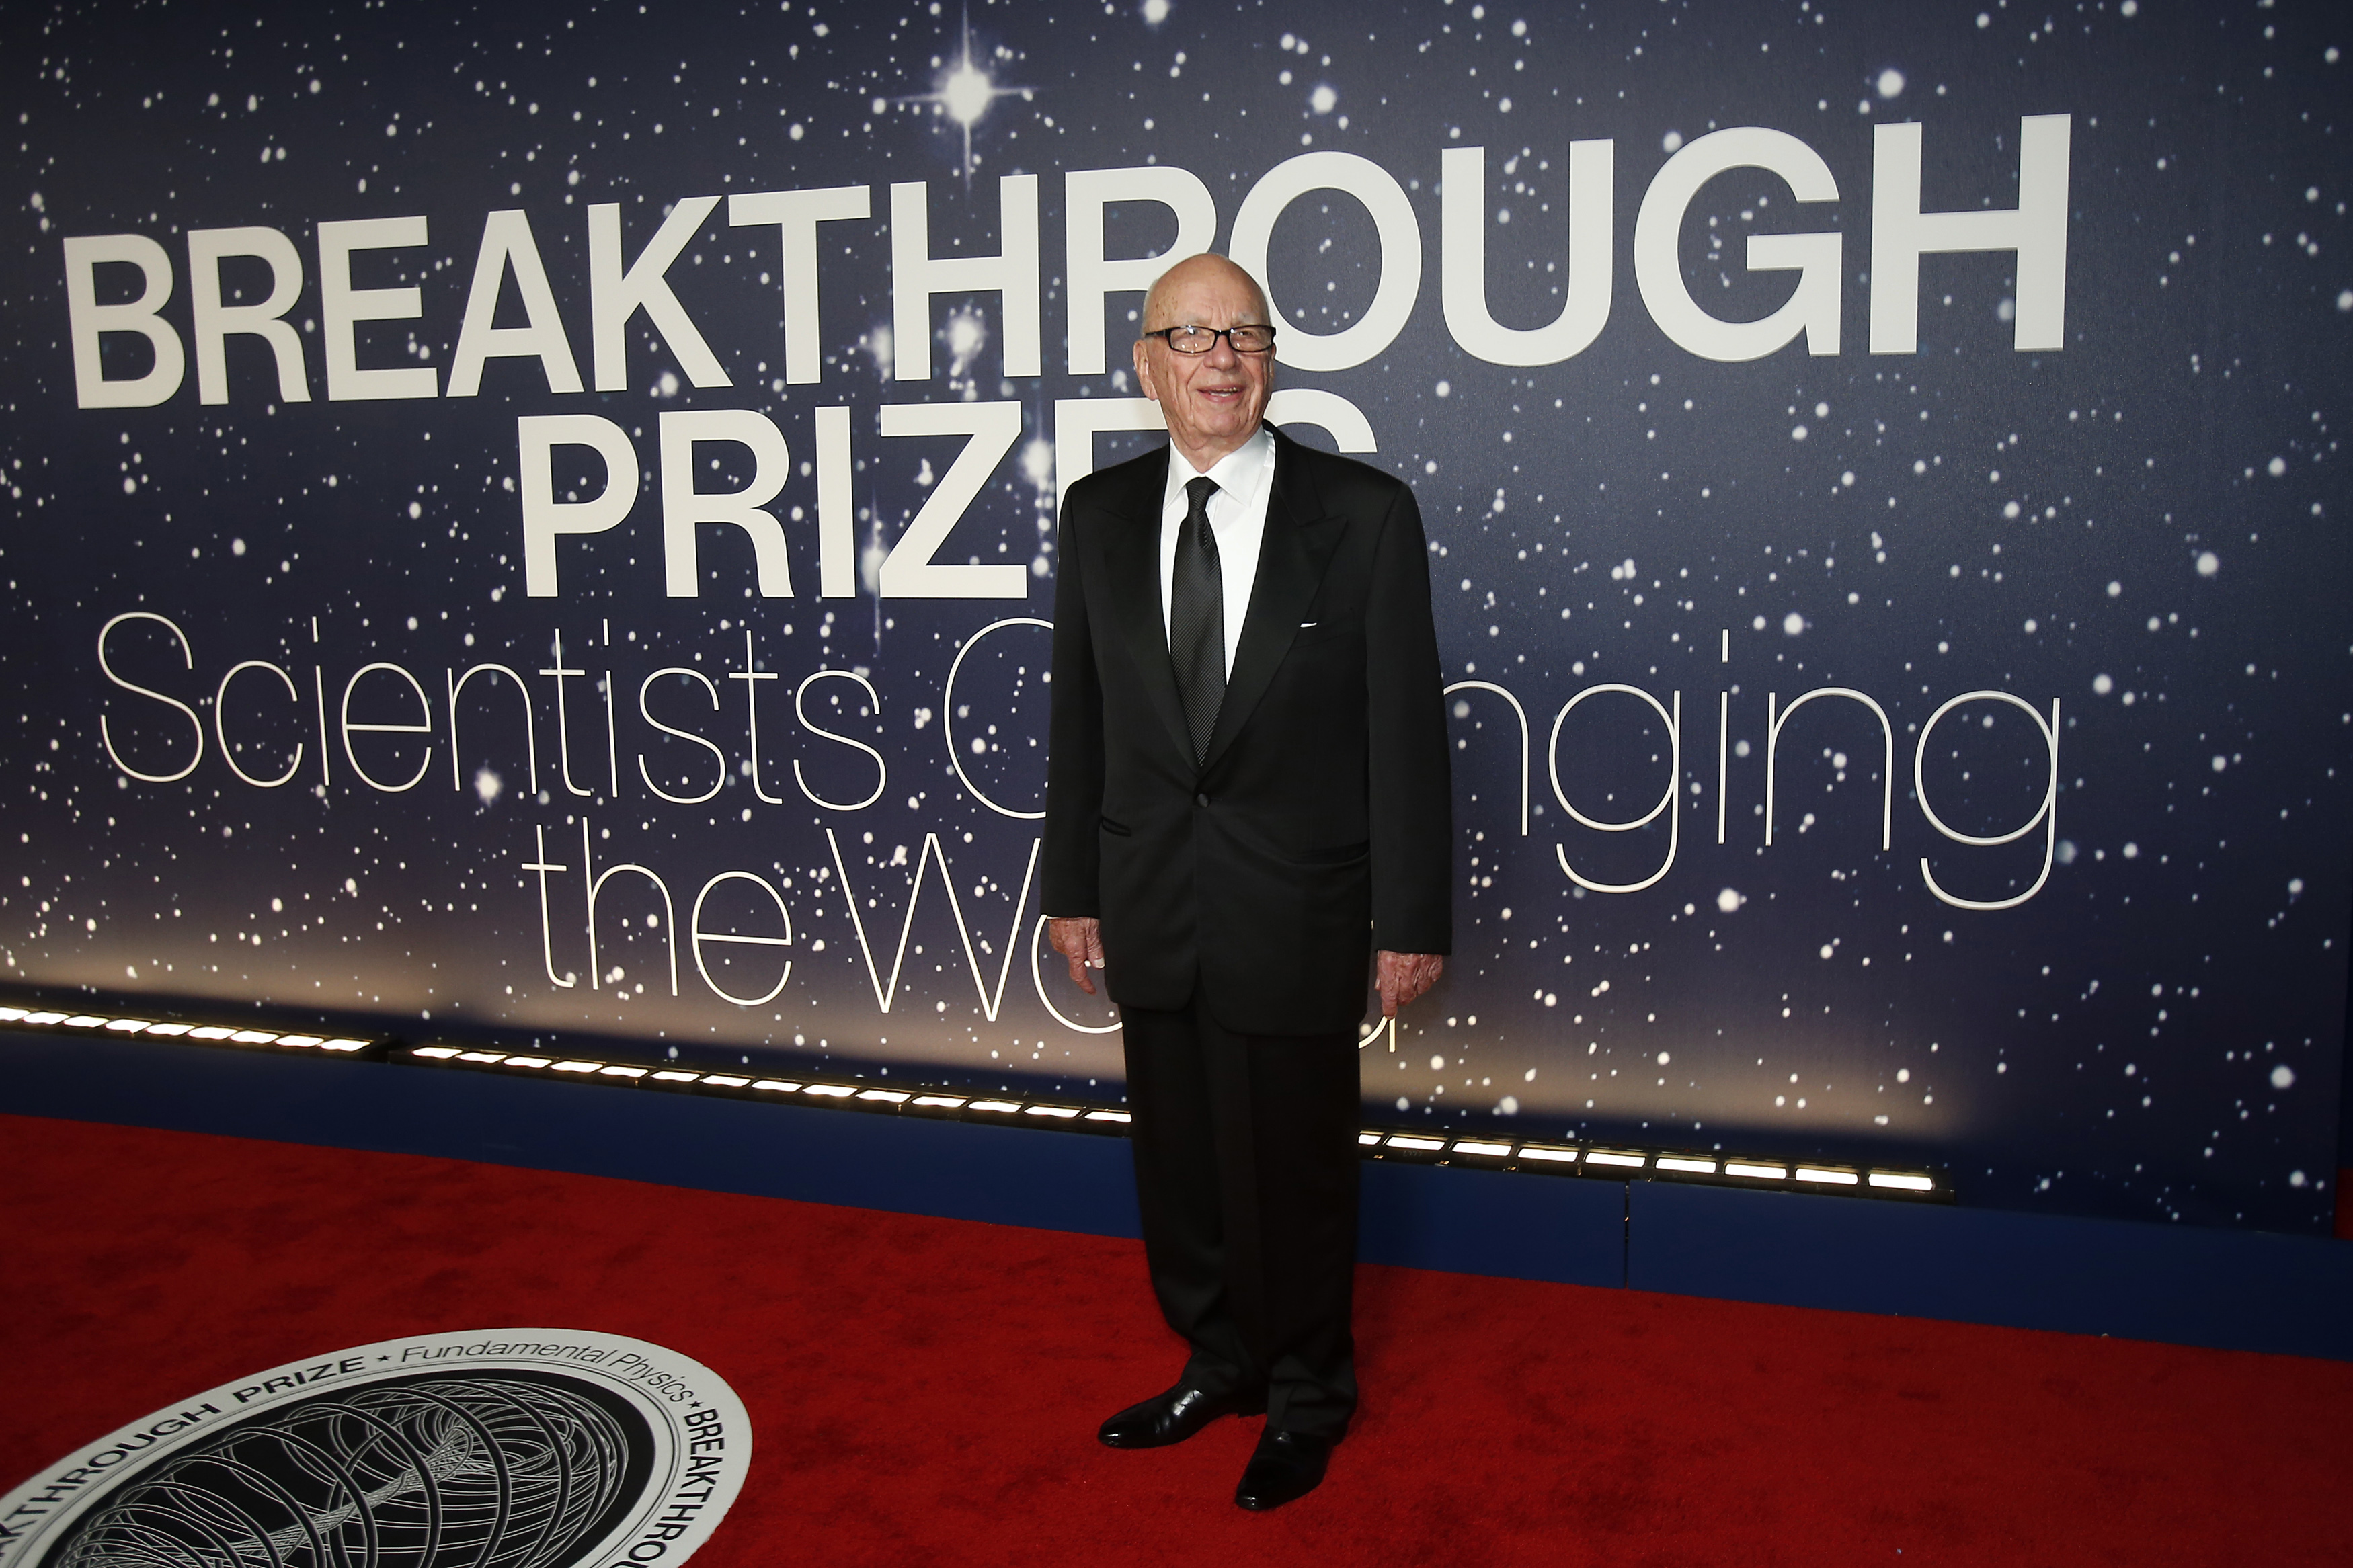 Executive Chairman of News Corp and Chairman and CEO of 21st Century Fox Murdoch arrives on the red carpet during the second annual Breakthrough Prize Awards in Mountain View